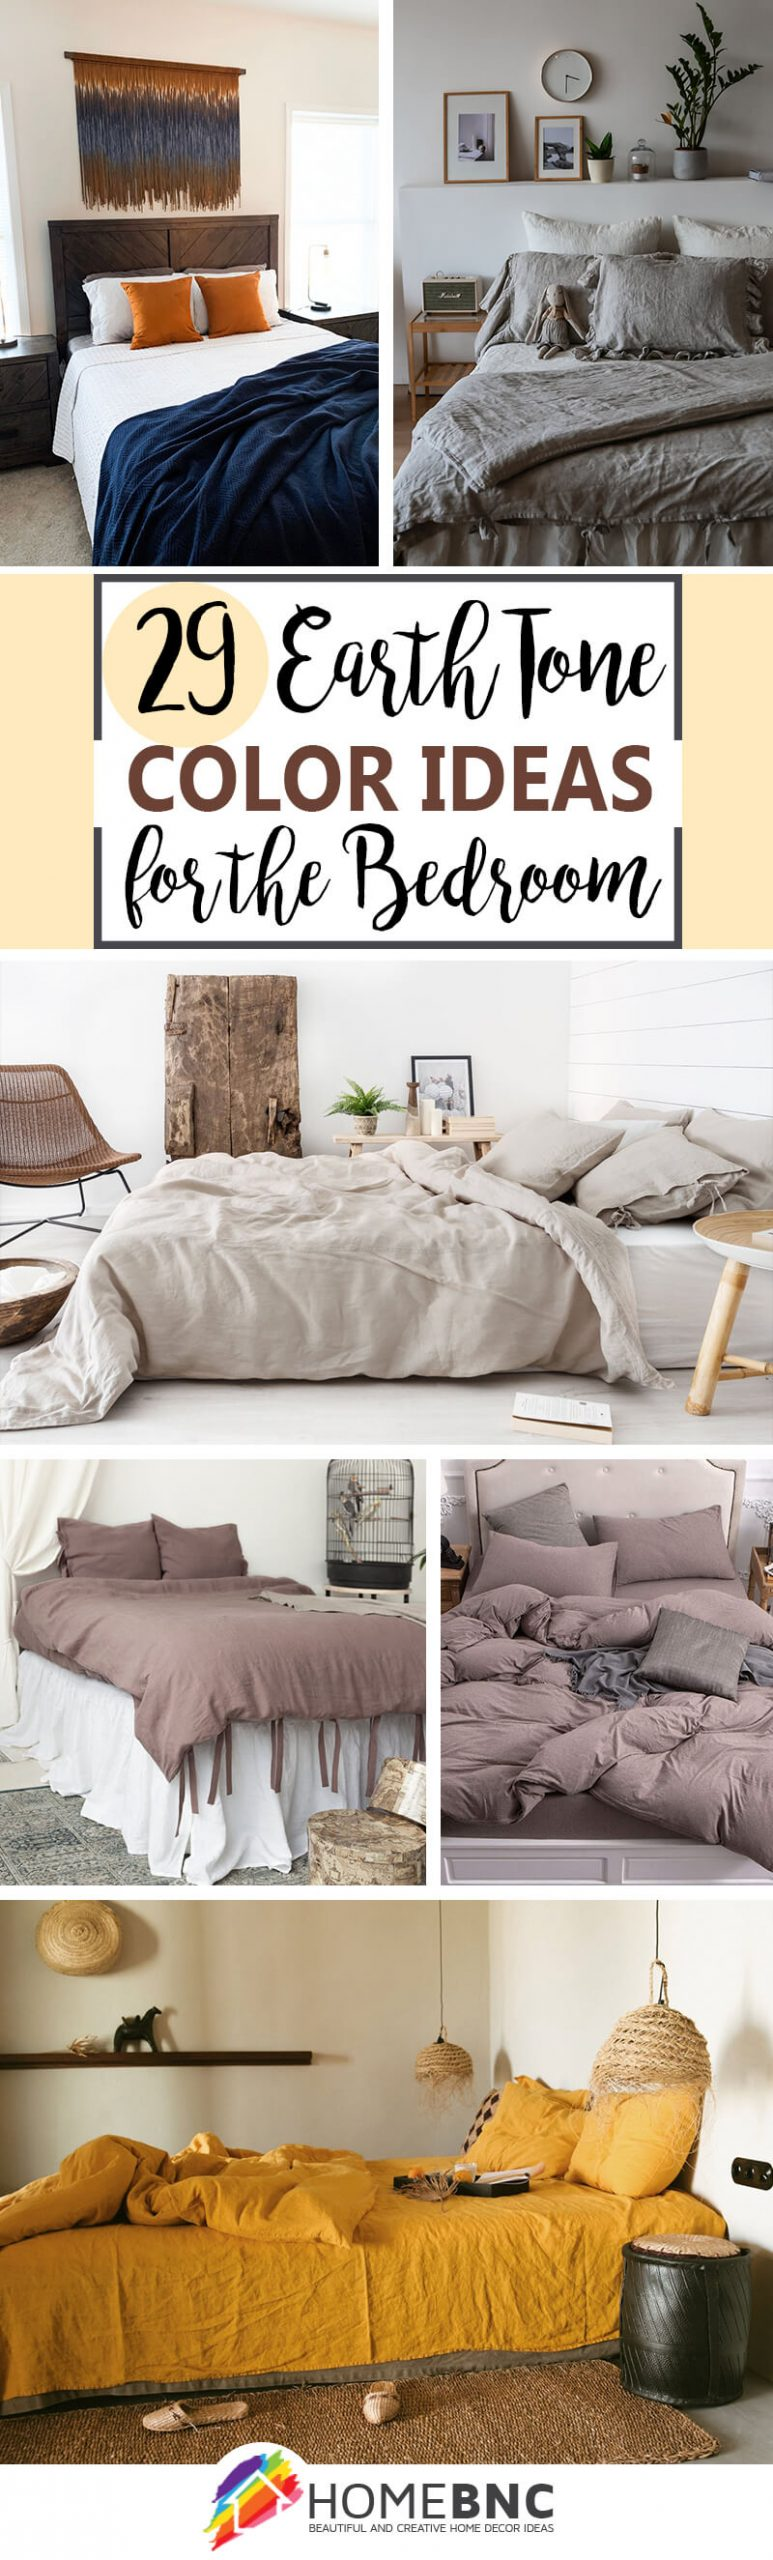 29 Inviting Earth Tone Color Ideas For Your Bedroom In 2021 Earth Tone Colors Earth Tone Bedroom Bedroom Colors